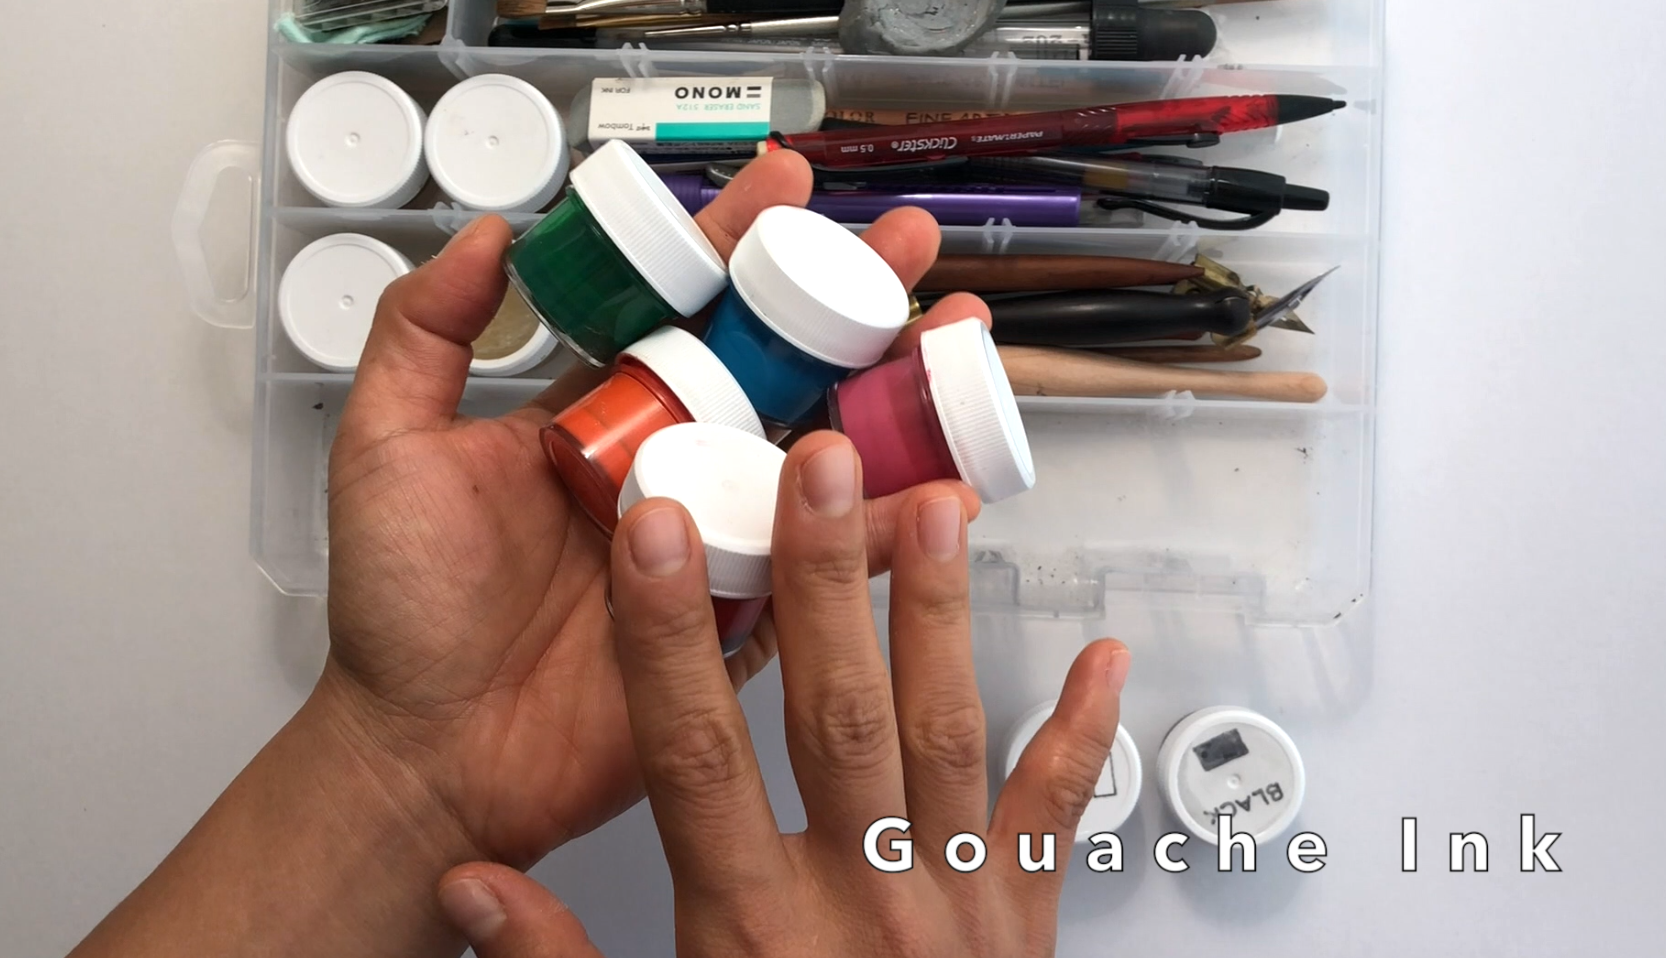 Colorful calligraphy inks for pointed pen